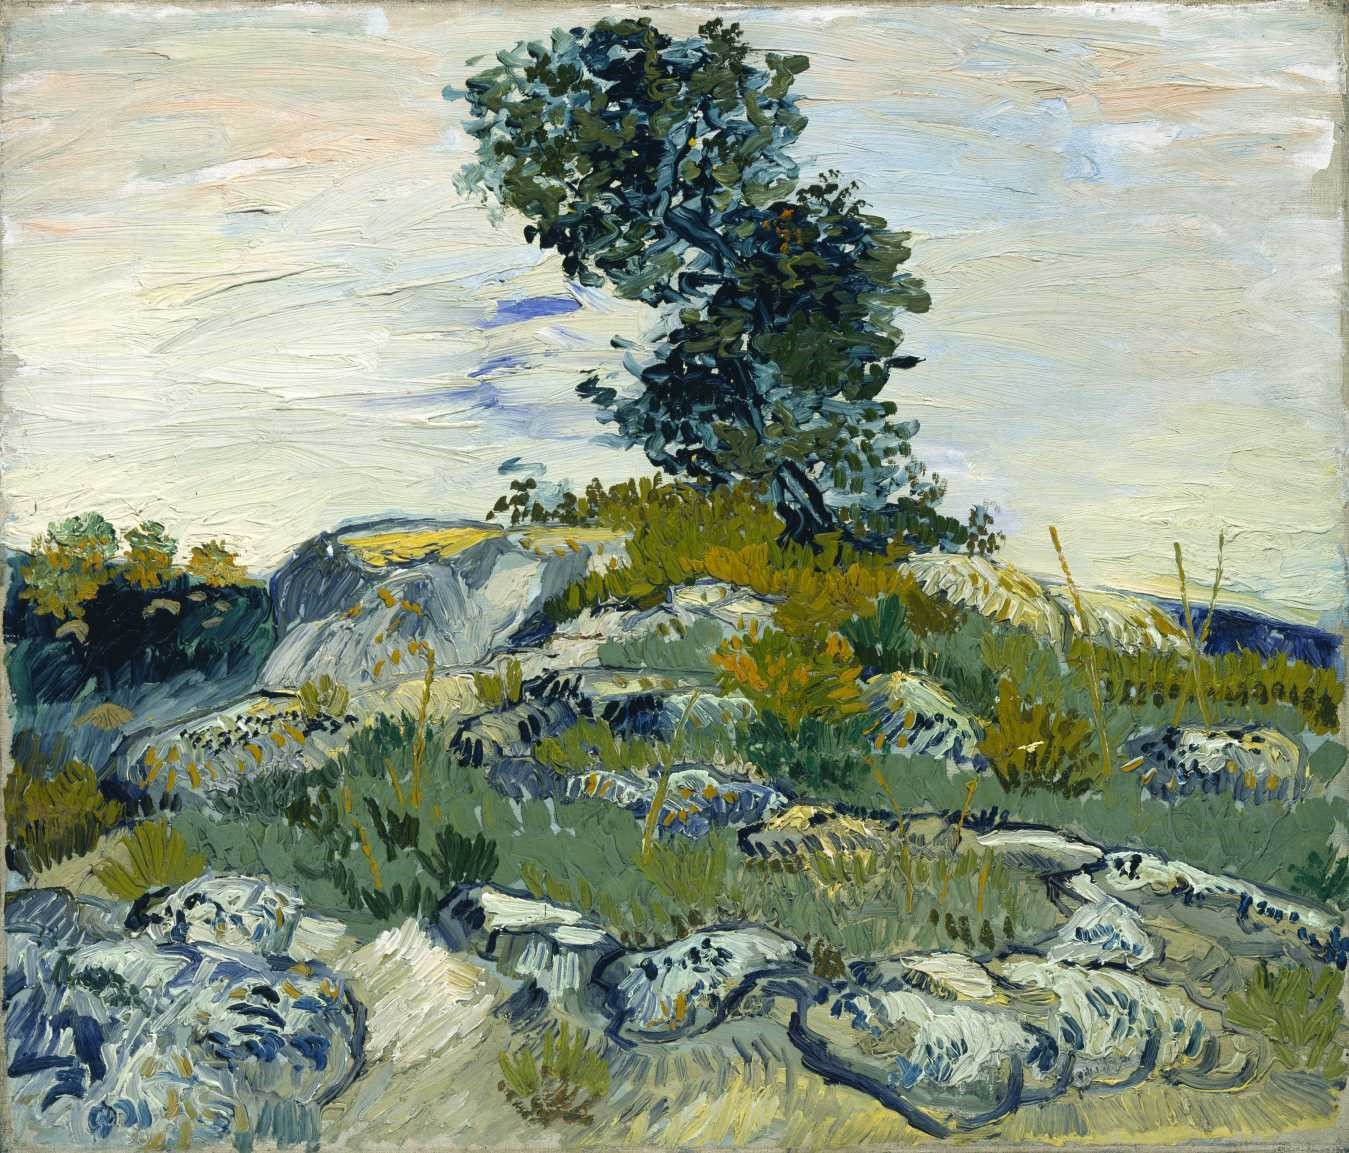 Van Gogh - The Rocks